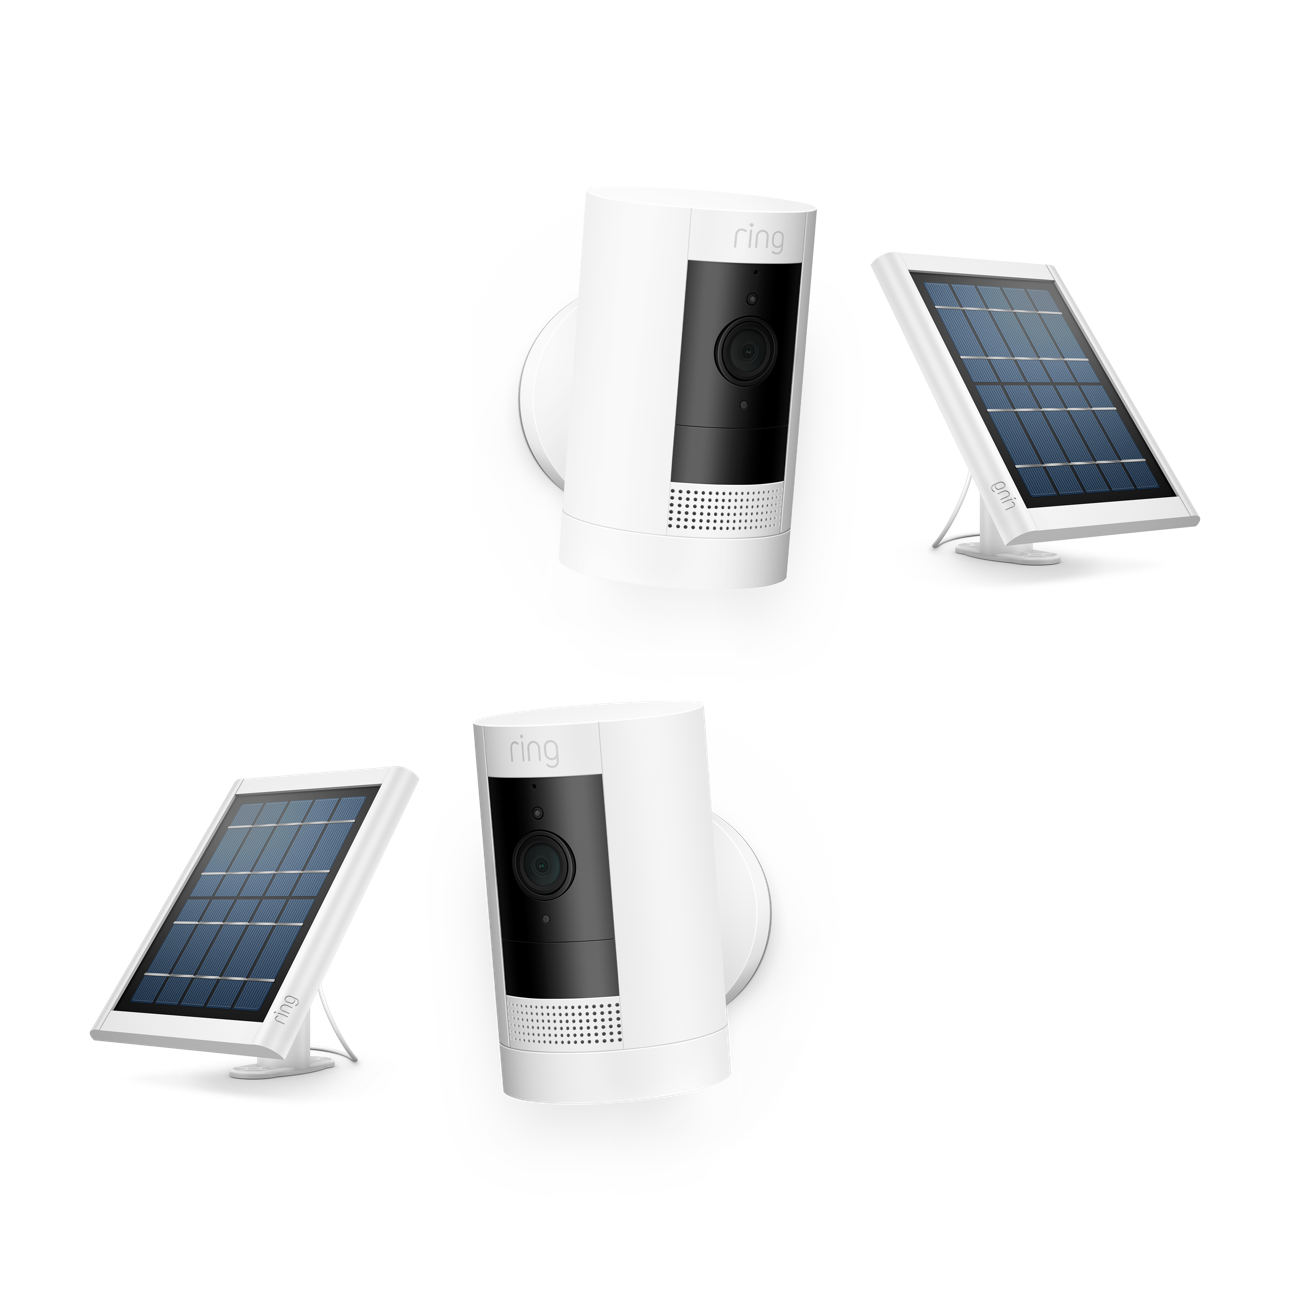 products/2pack_SUC_solar_white_1290x1290_Desktop.png